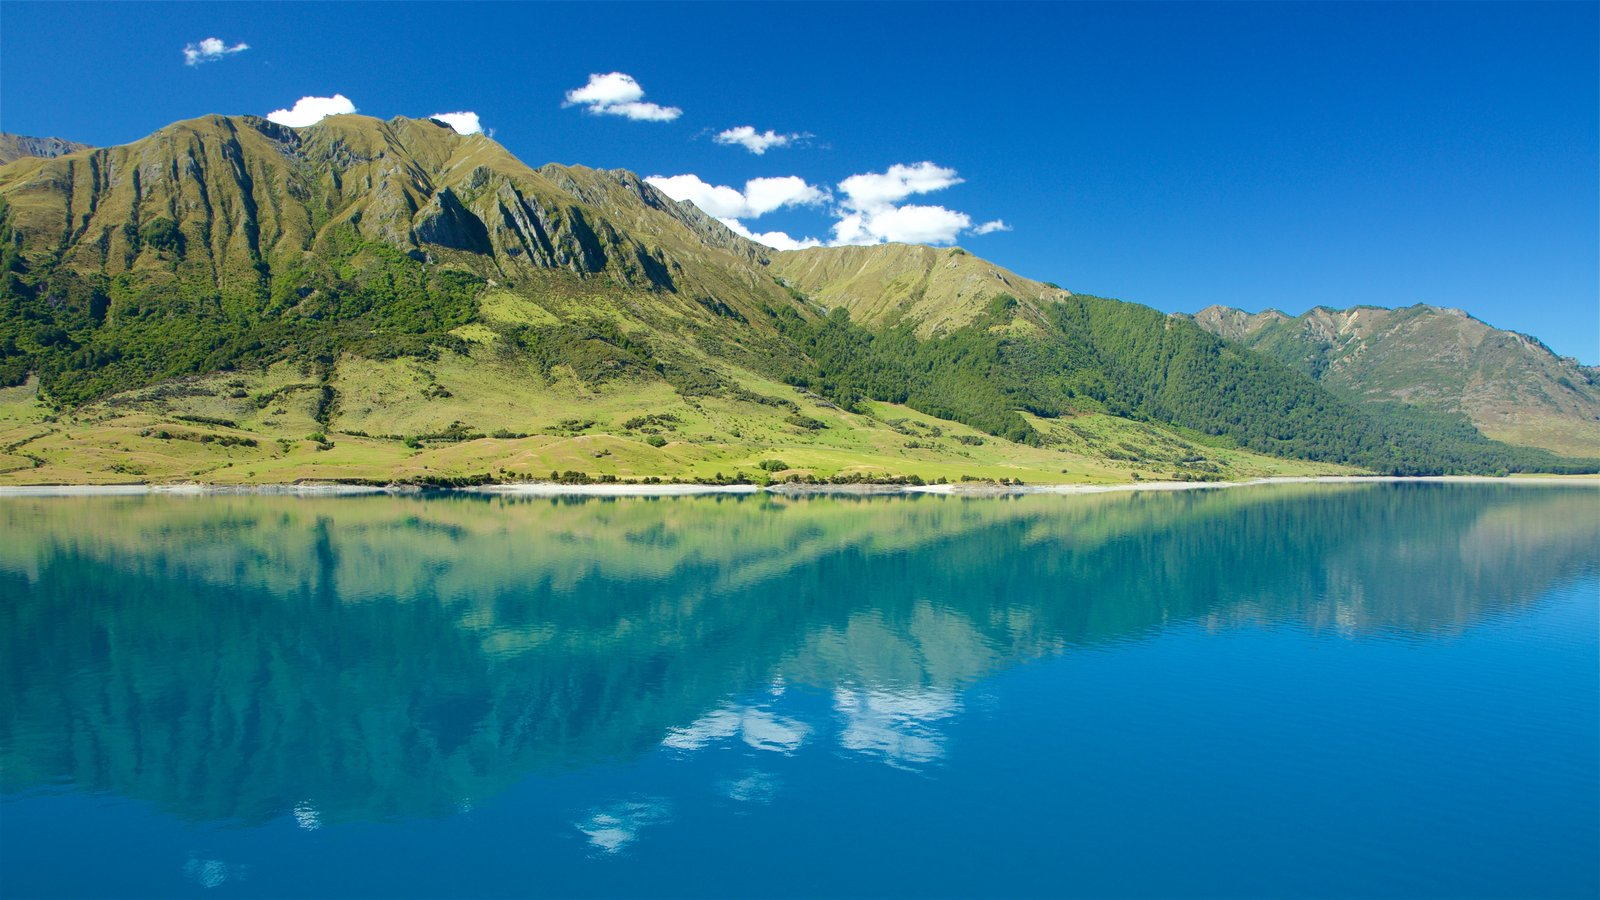 Lake Hawea featuring mountains and a lake or waterhole